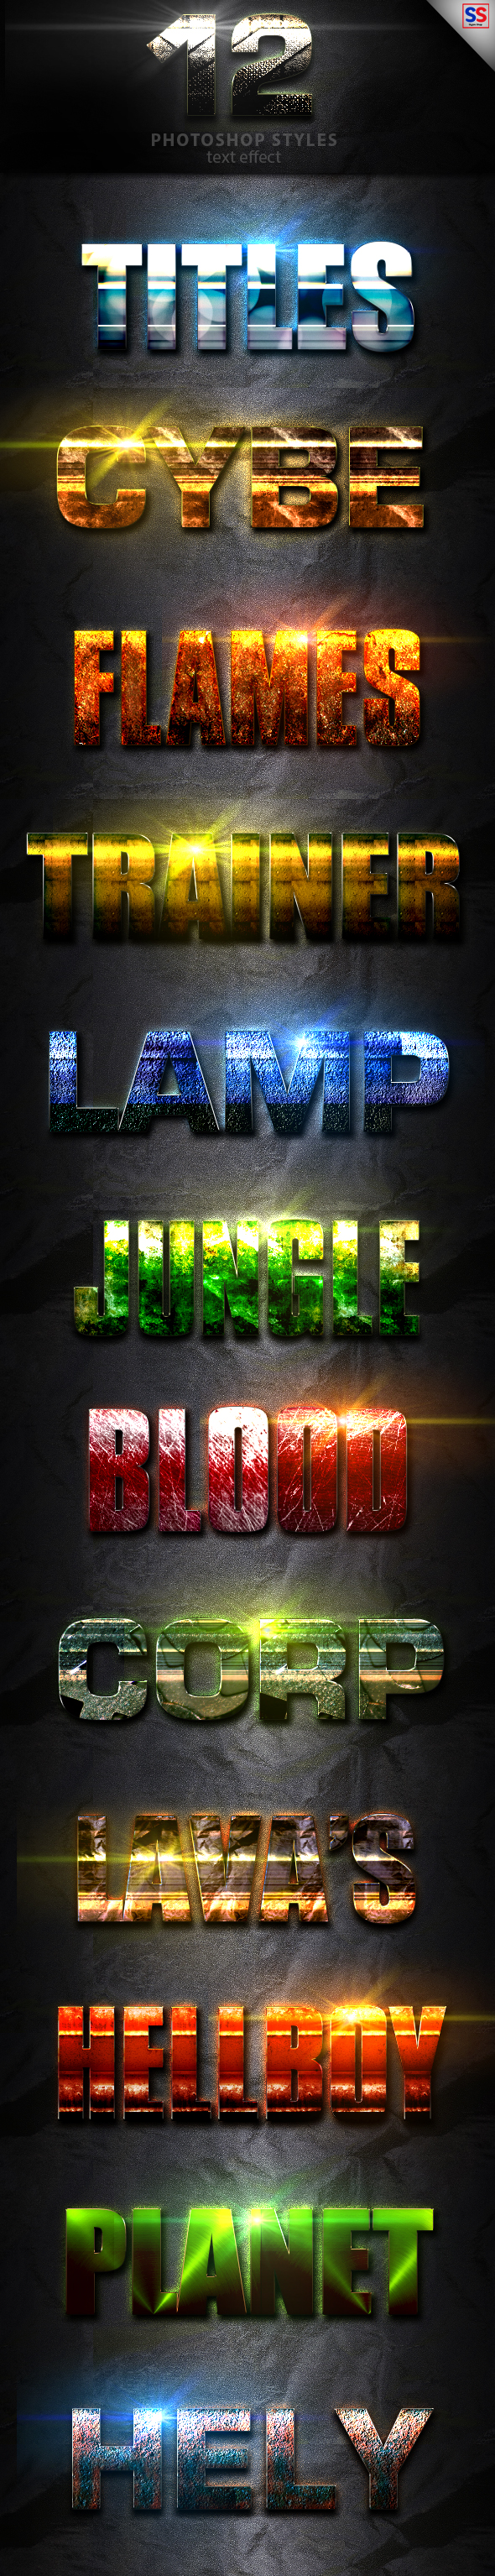 12 Light Photoshop text Effect vol 12 - Text Effects Styles